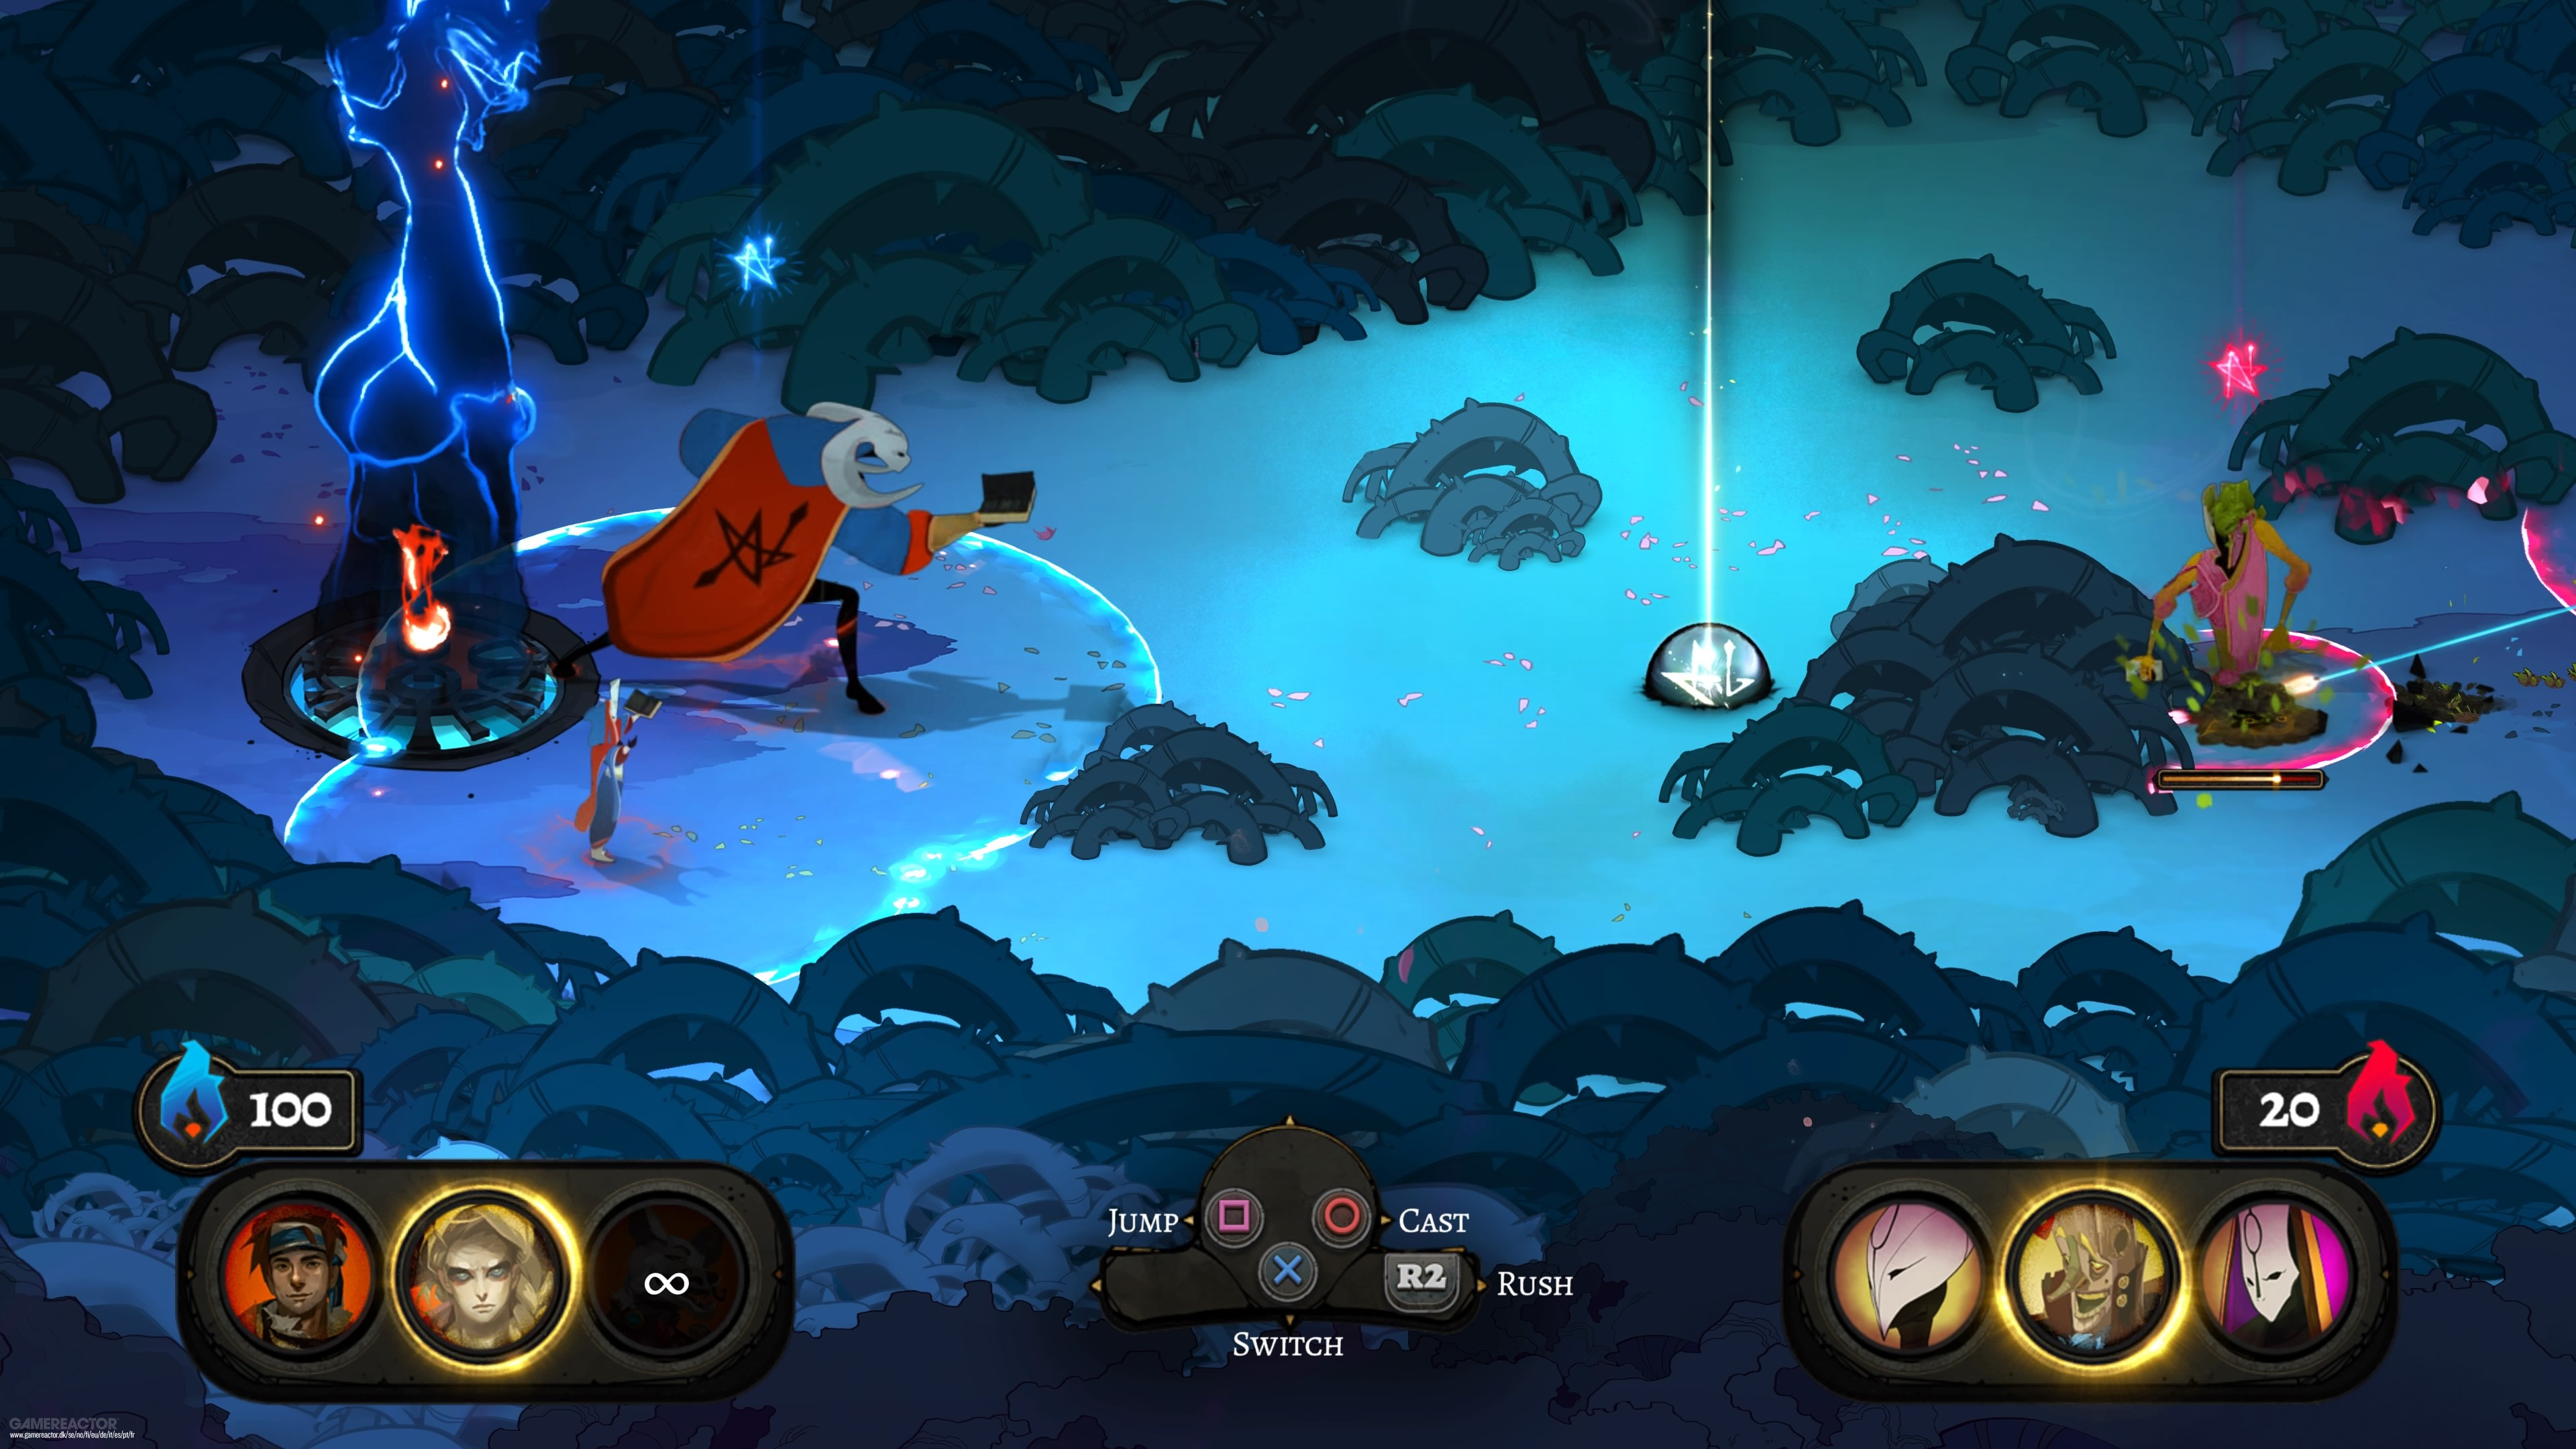 Game image Pyre